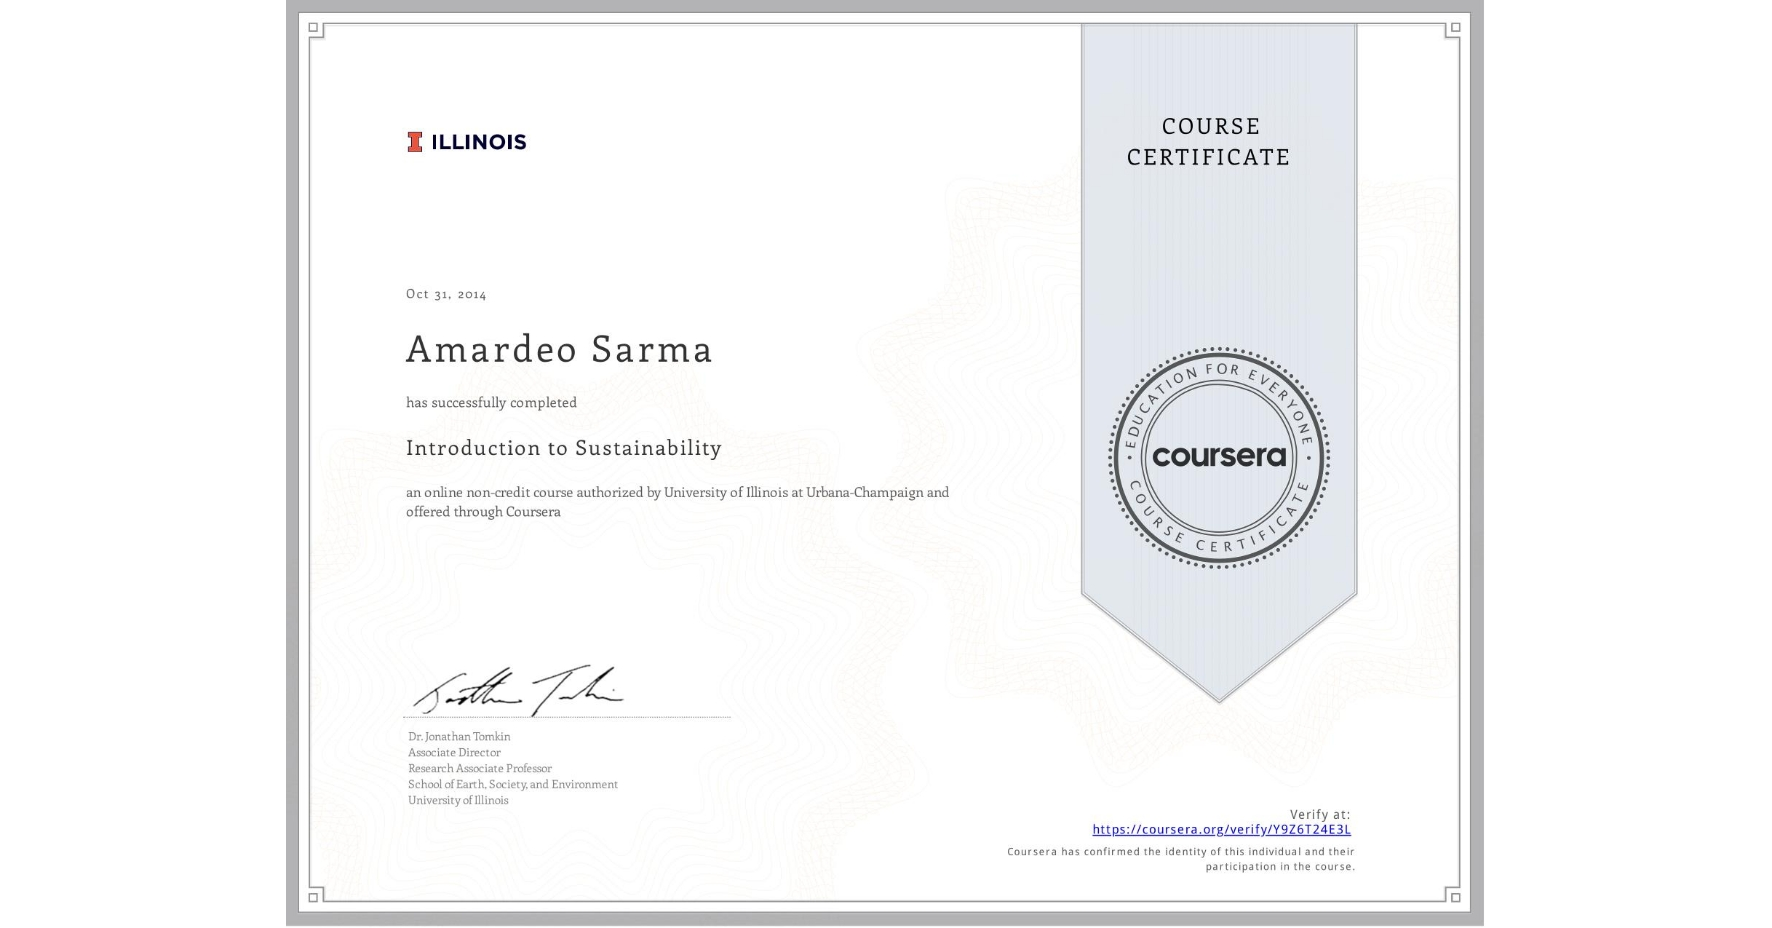 View certificate for Amardeo Sarma, Introduction to Sustainability, an online non-credit course authorized by University of Illinois at Urbana-Champaign and offered through Coursera